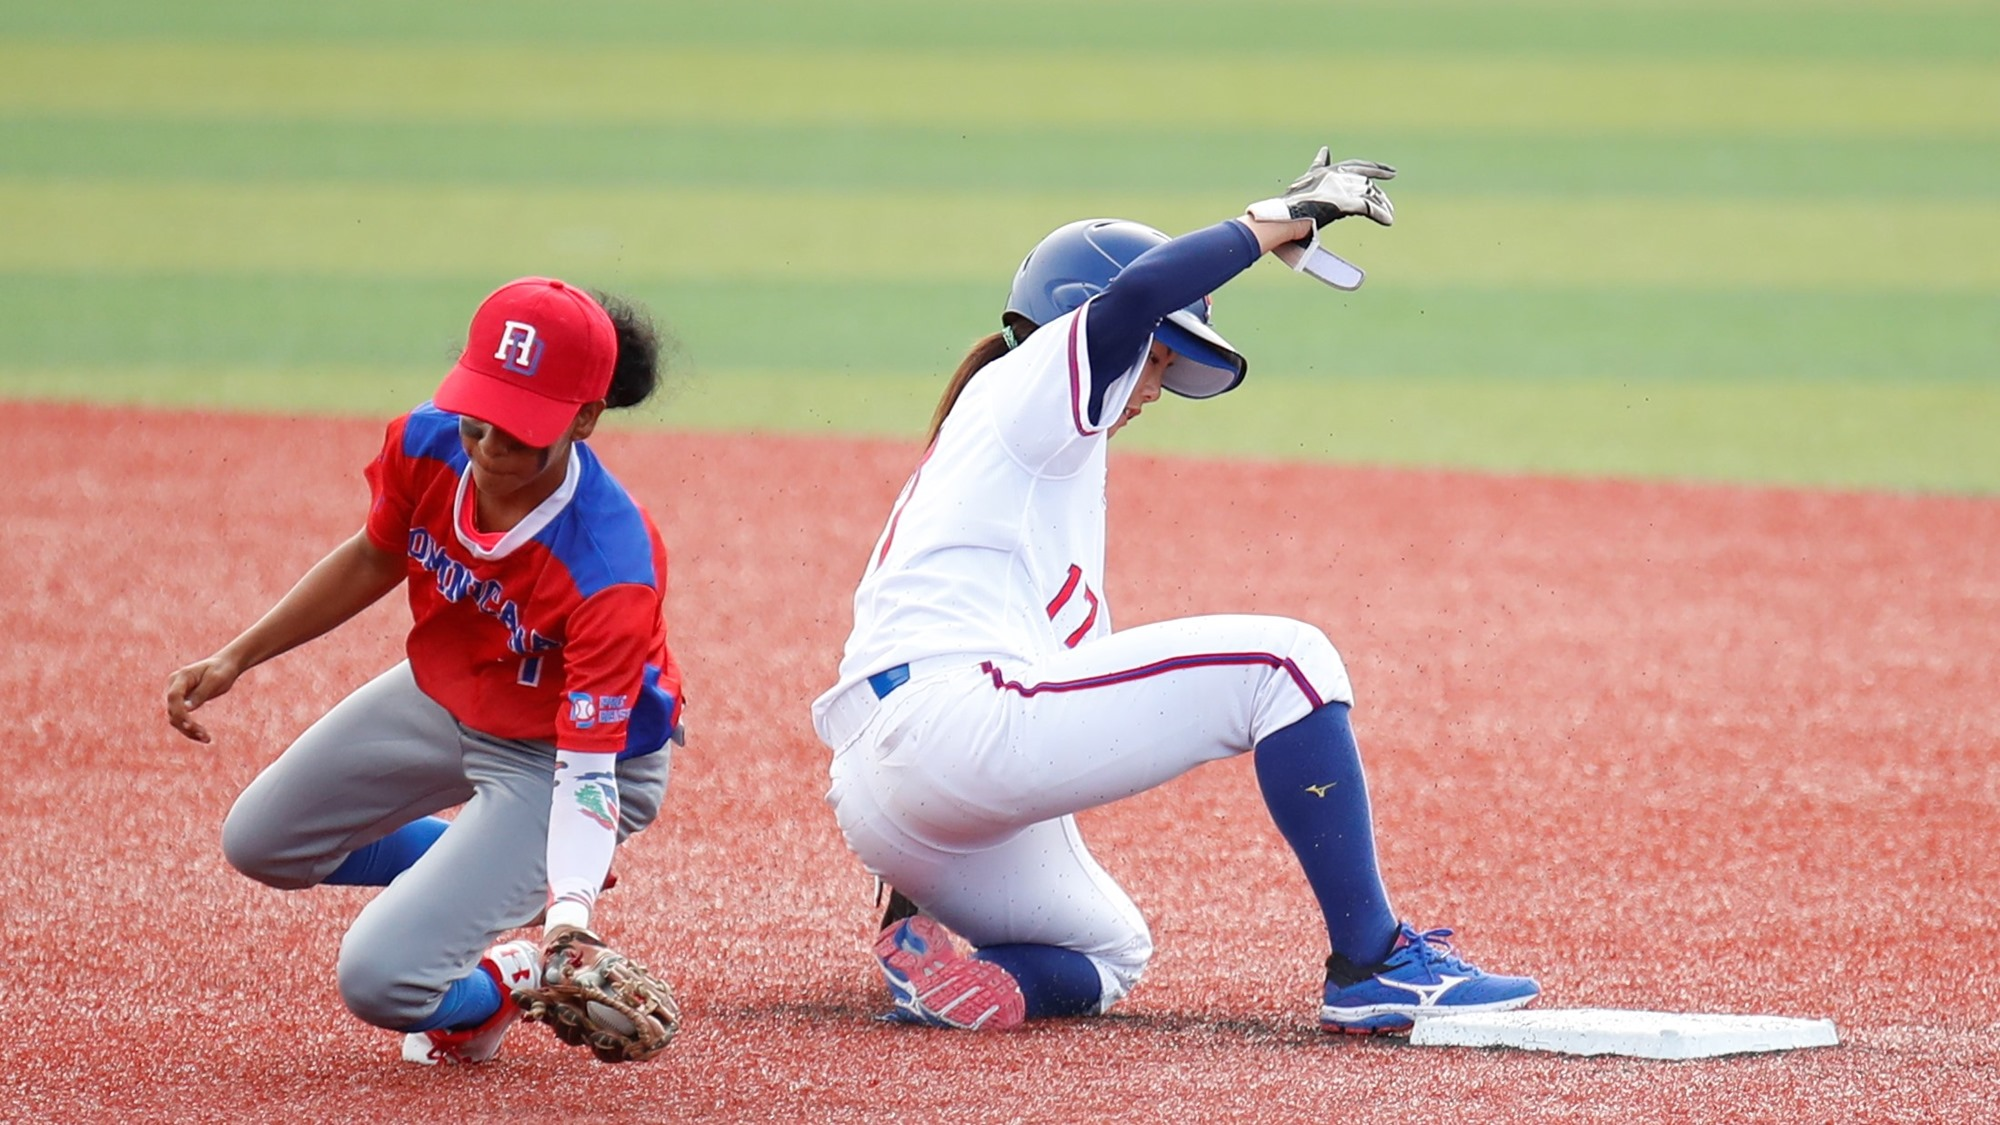 Chinese Taipei getting in scoring position